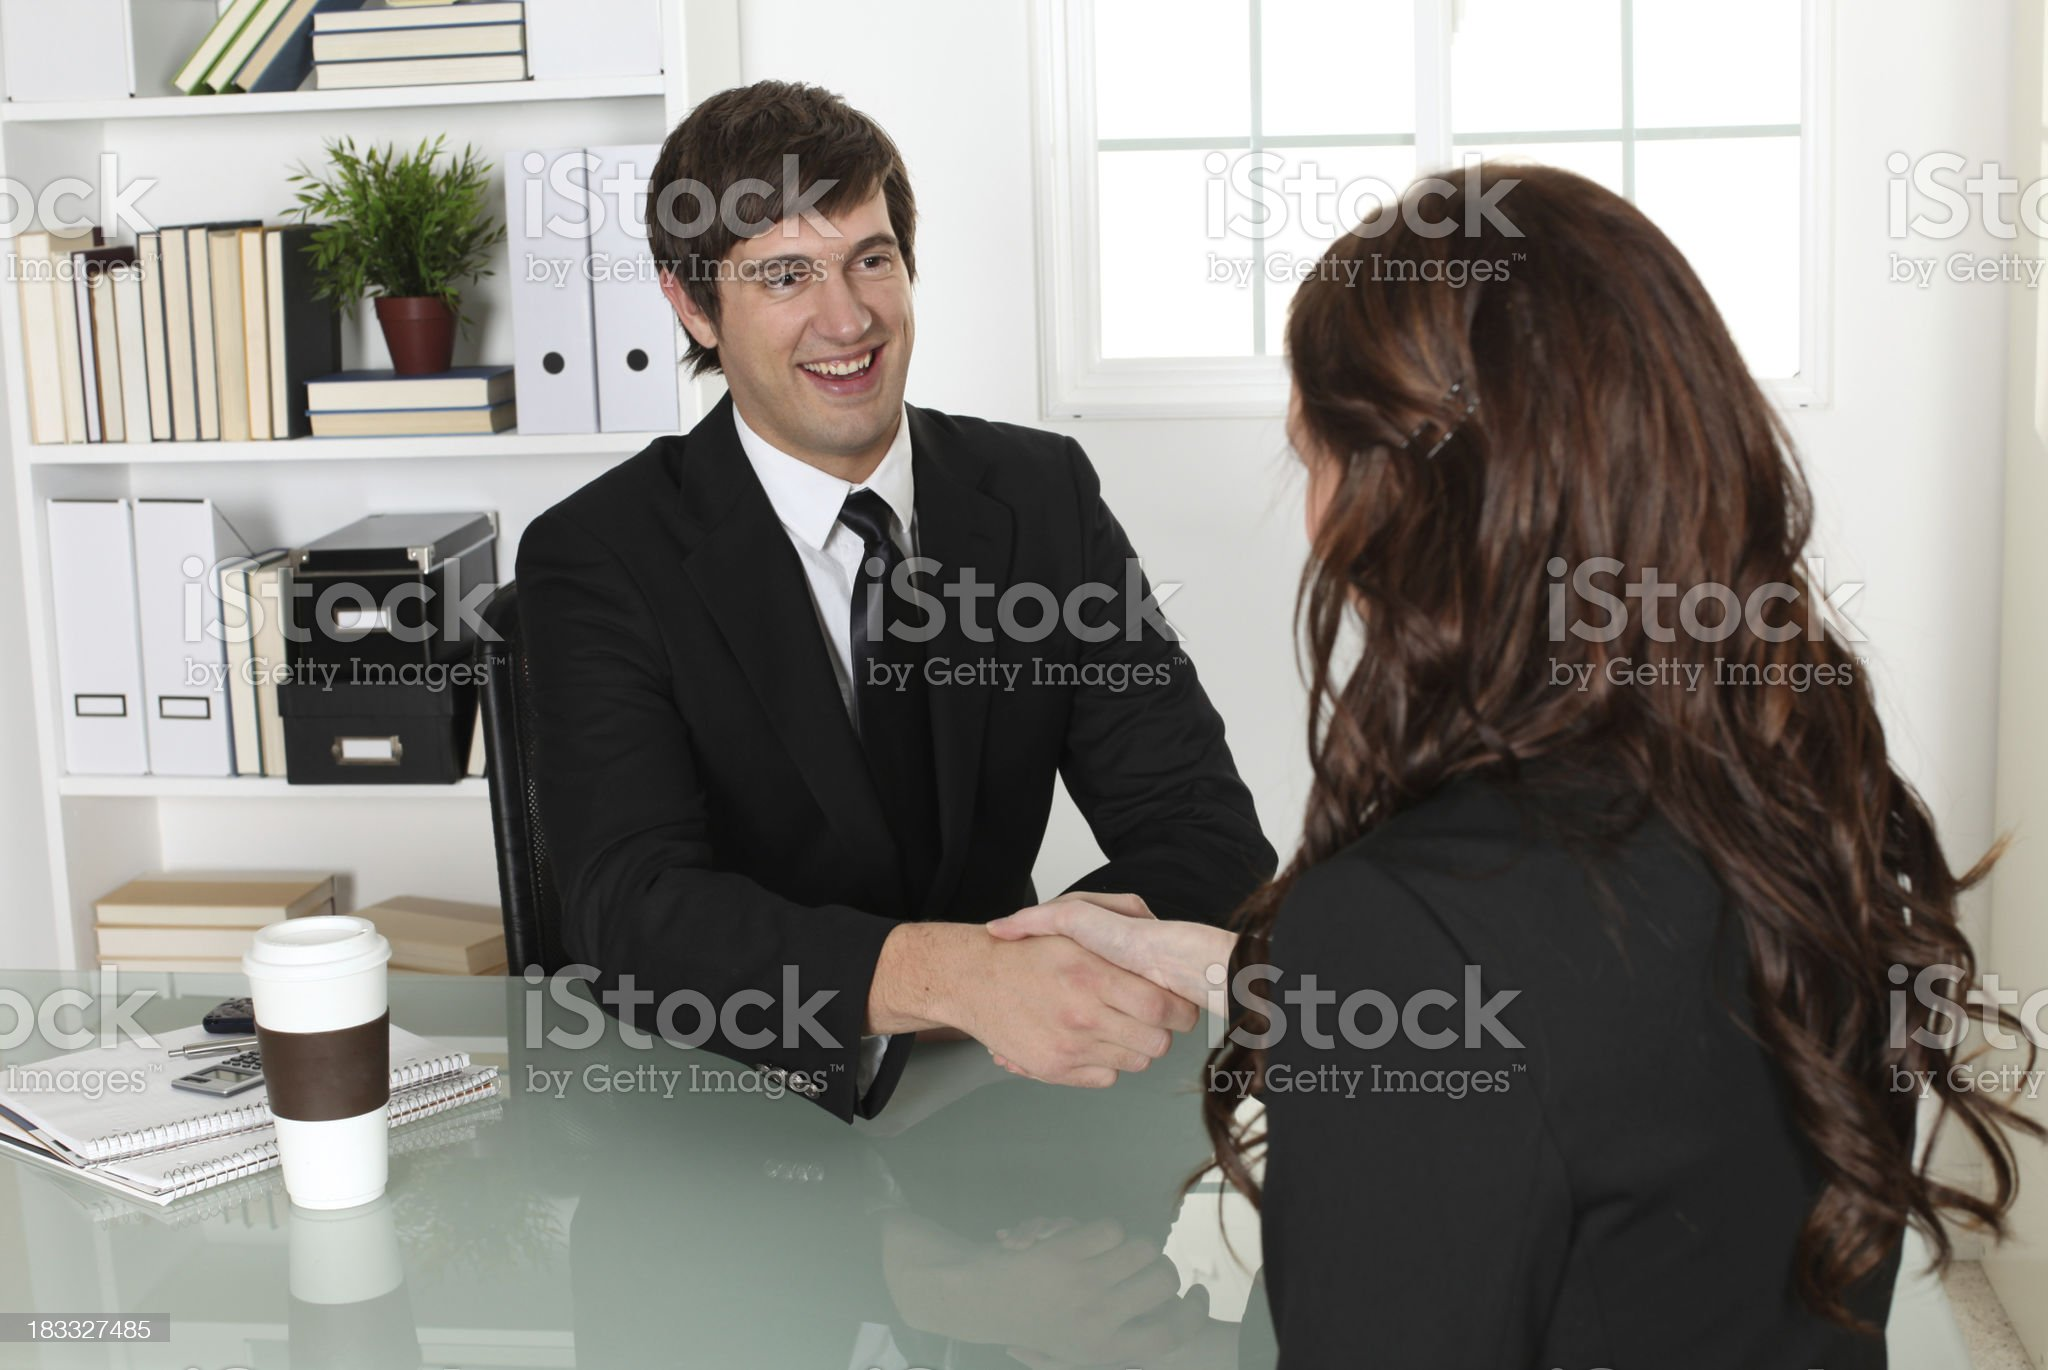 Businessman greeting woman sitting behind desk royalty-free stock photo